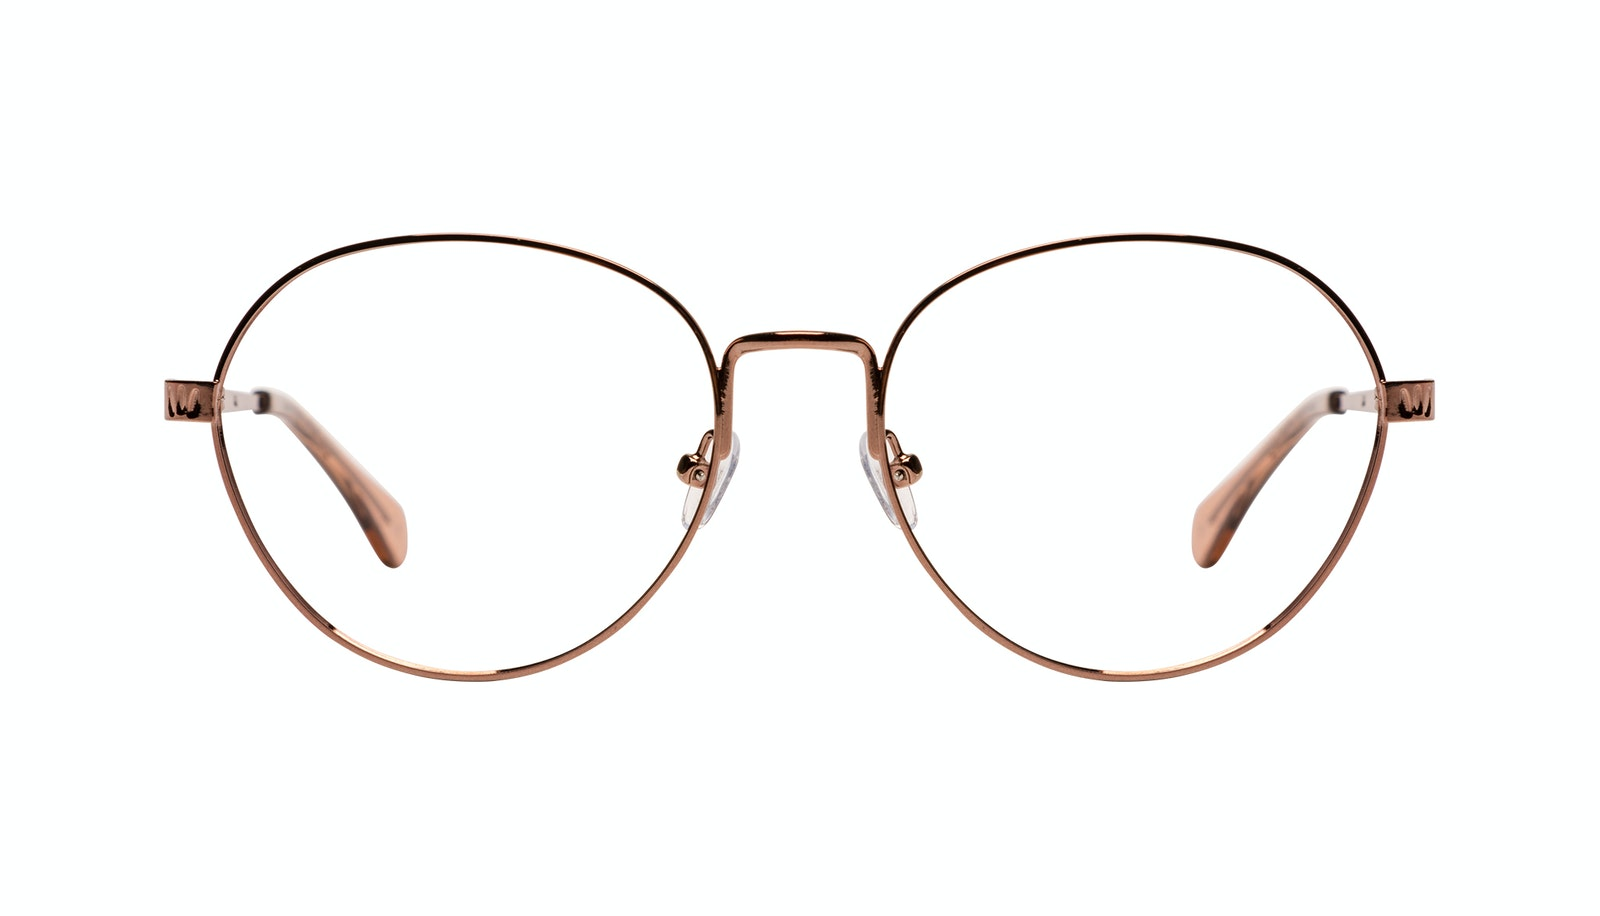 Affordable Fashion Glasses Round Eyeglasses Women Brace Plus Rose Gold